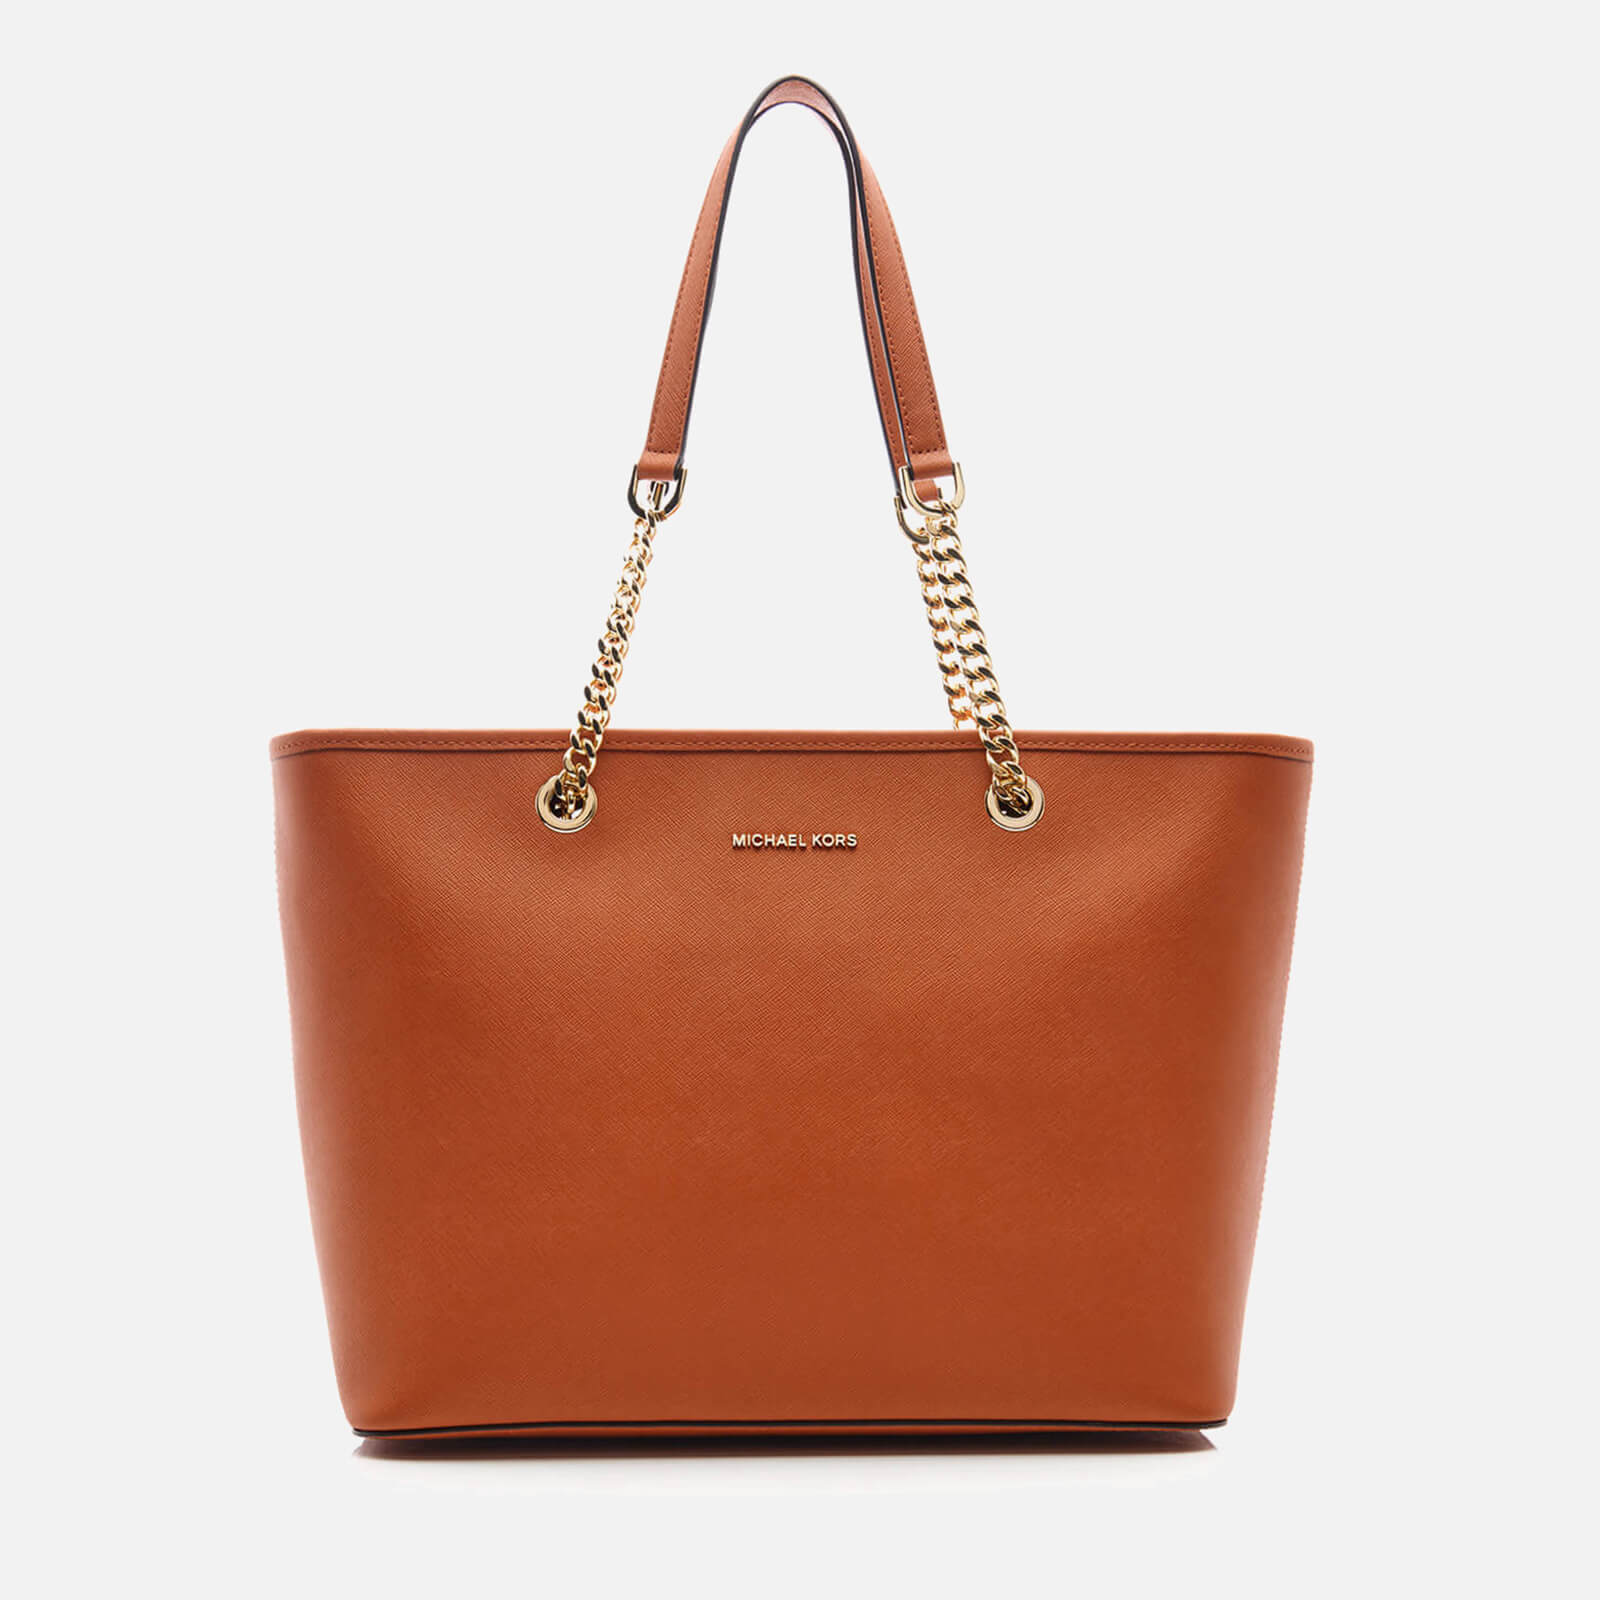 625f185e6a037b MICHAEL MICHAEL KORS Women's Jet Set Travel Chain Top Zip Tote Bag - Orange  - Free UK Delivery over £50